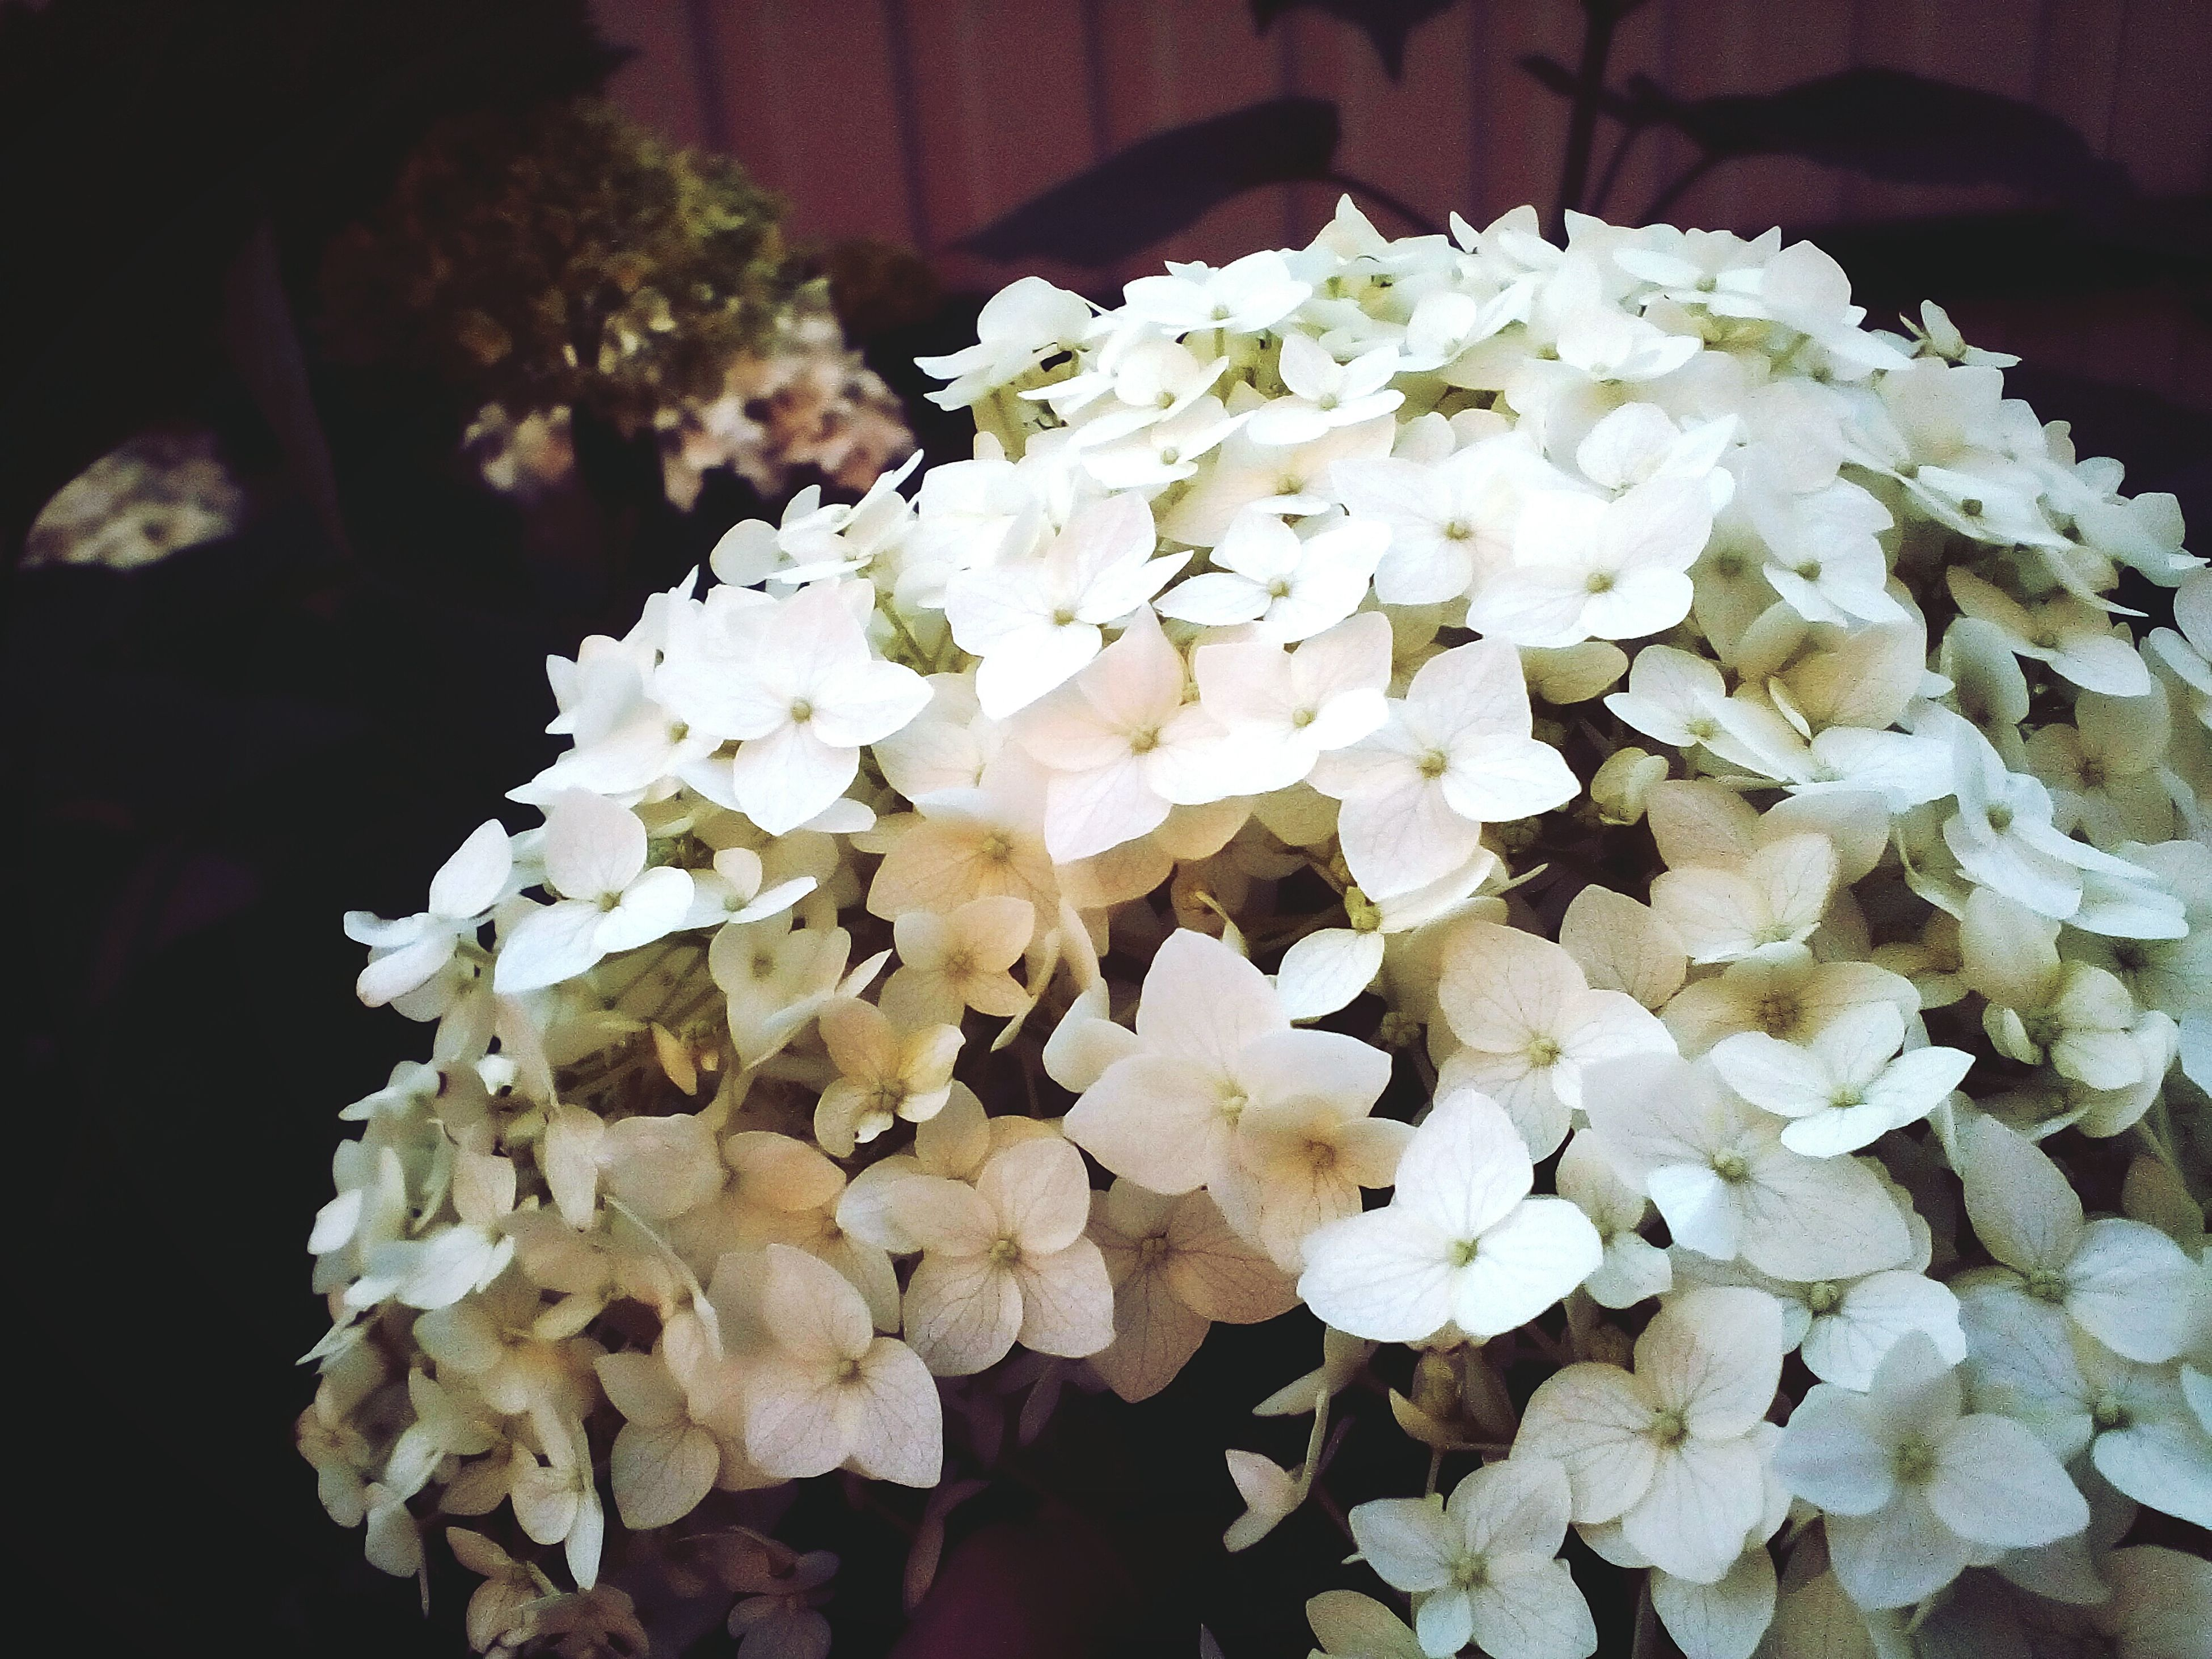 flower, freshness, petal, fragility, white color, flower head, beauty in nature, growth, blooming, nature, close-up, white, blossom, in bloom, focus on foreground, bunch of flowers, plant, no people, botany, outdoors, day, softness, selective focus, pollen, tranquility